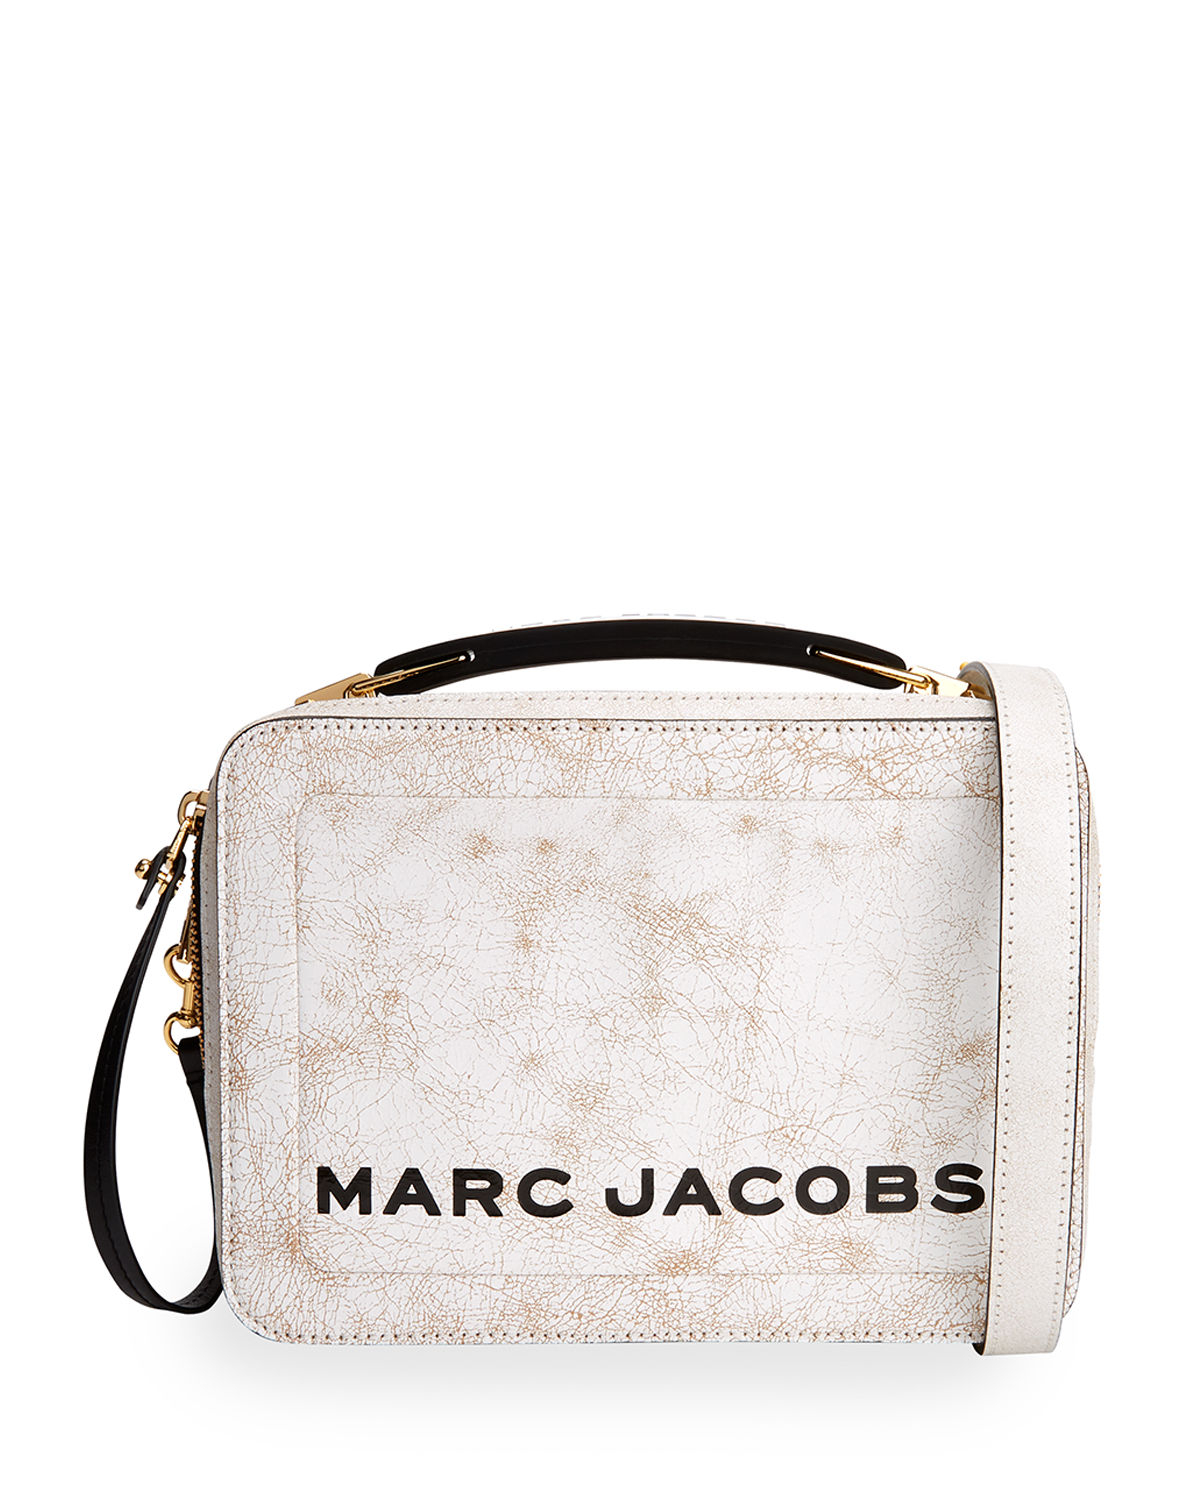 dbdc2b160c2b Marc Jacobs The Box Distressed Crossbody Bag